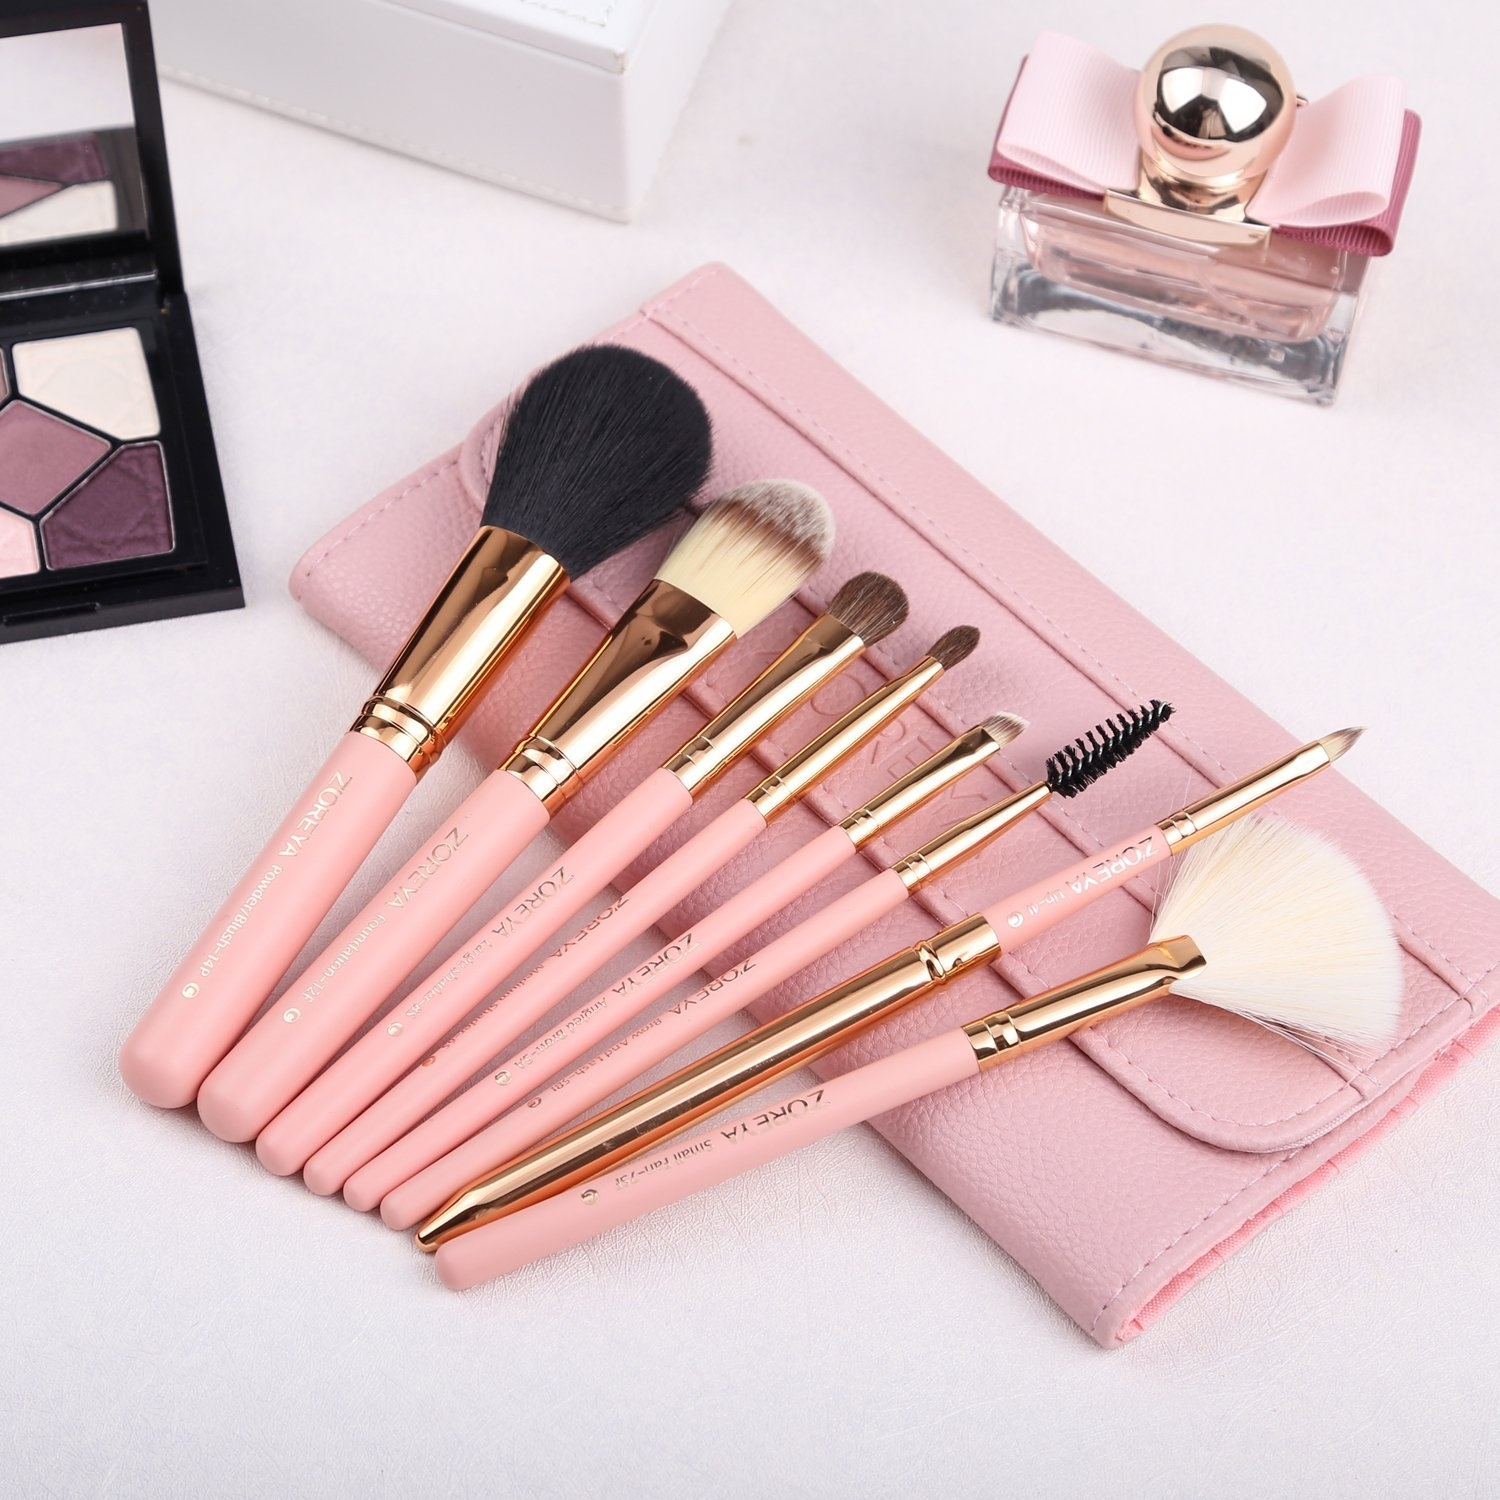 7527ca01495b Makeup Brushes Zoreya 8Pcs Travel Makeup Brushes Set With Case Pink Powder  Foundation Fan Contour Eyes Makeup Brushes For Beginners